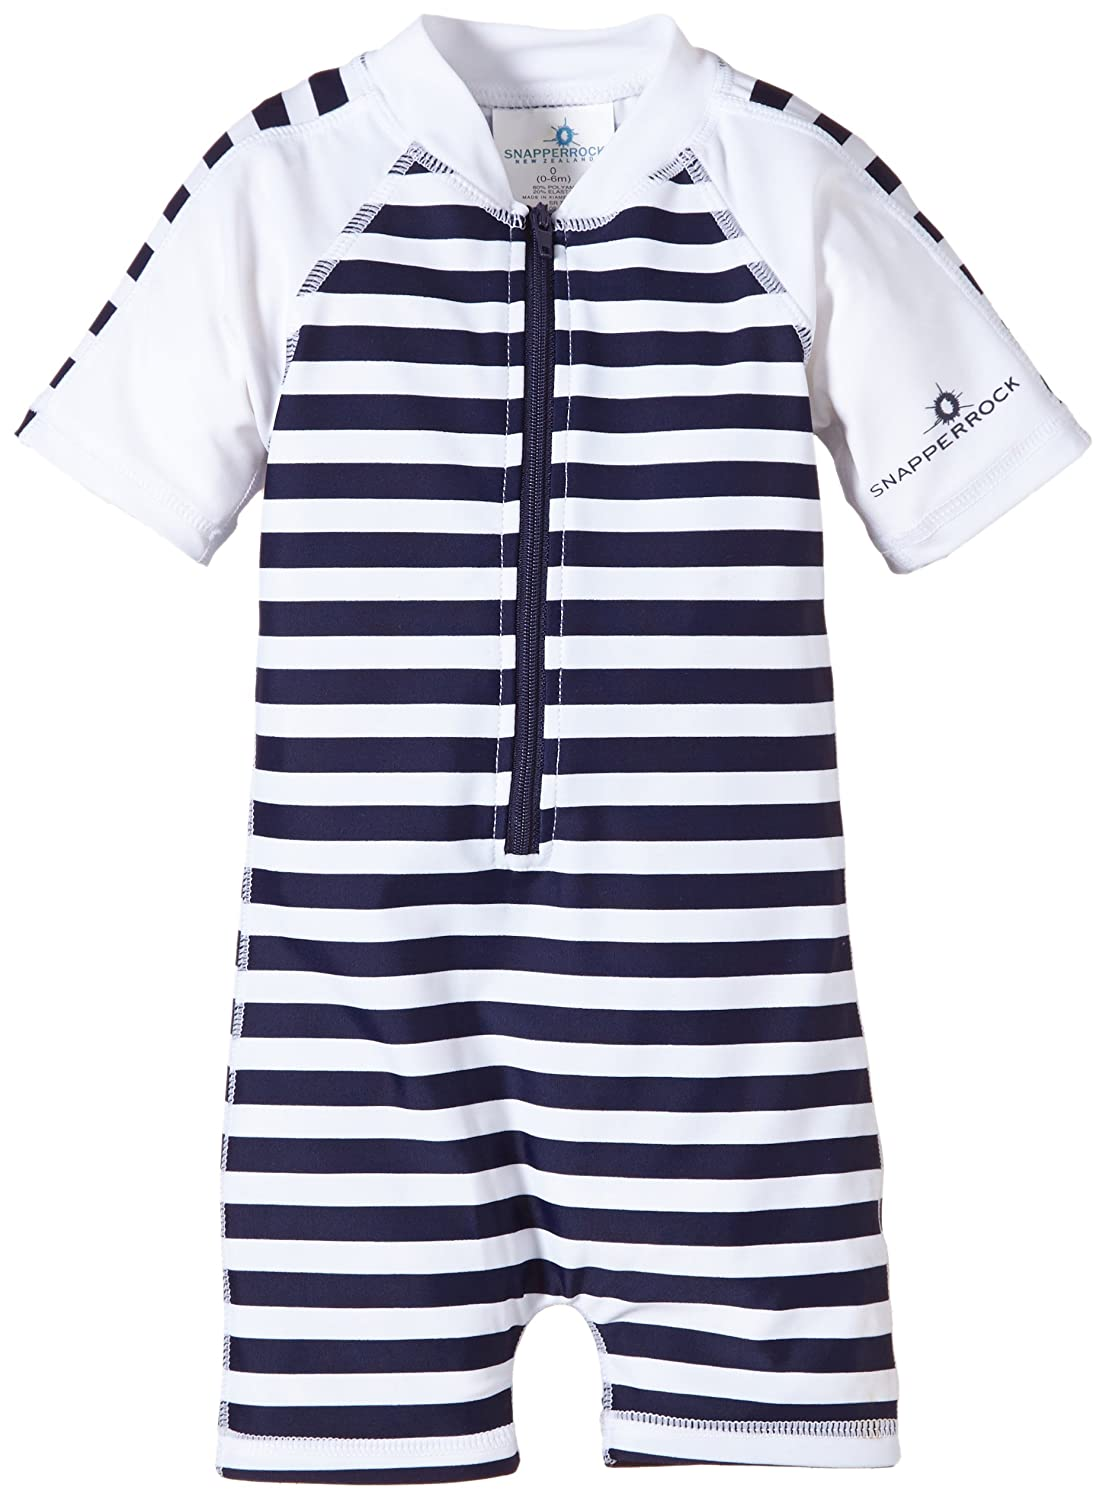 Snapper Rock Baby Boys' Zippered One Piece Short Sleeve Sun Suit